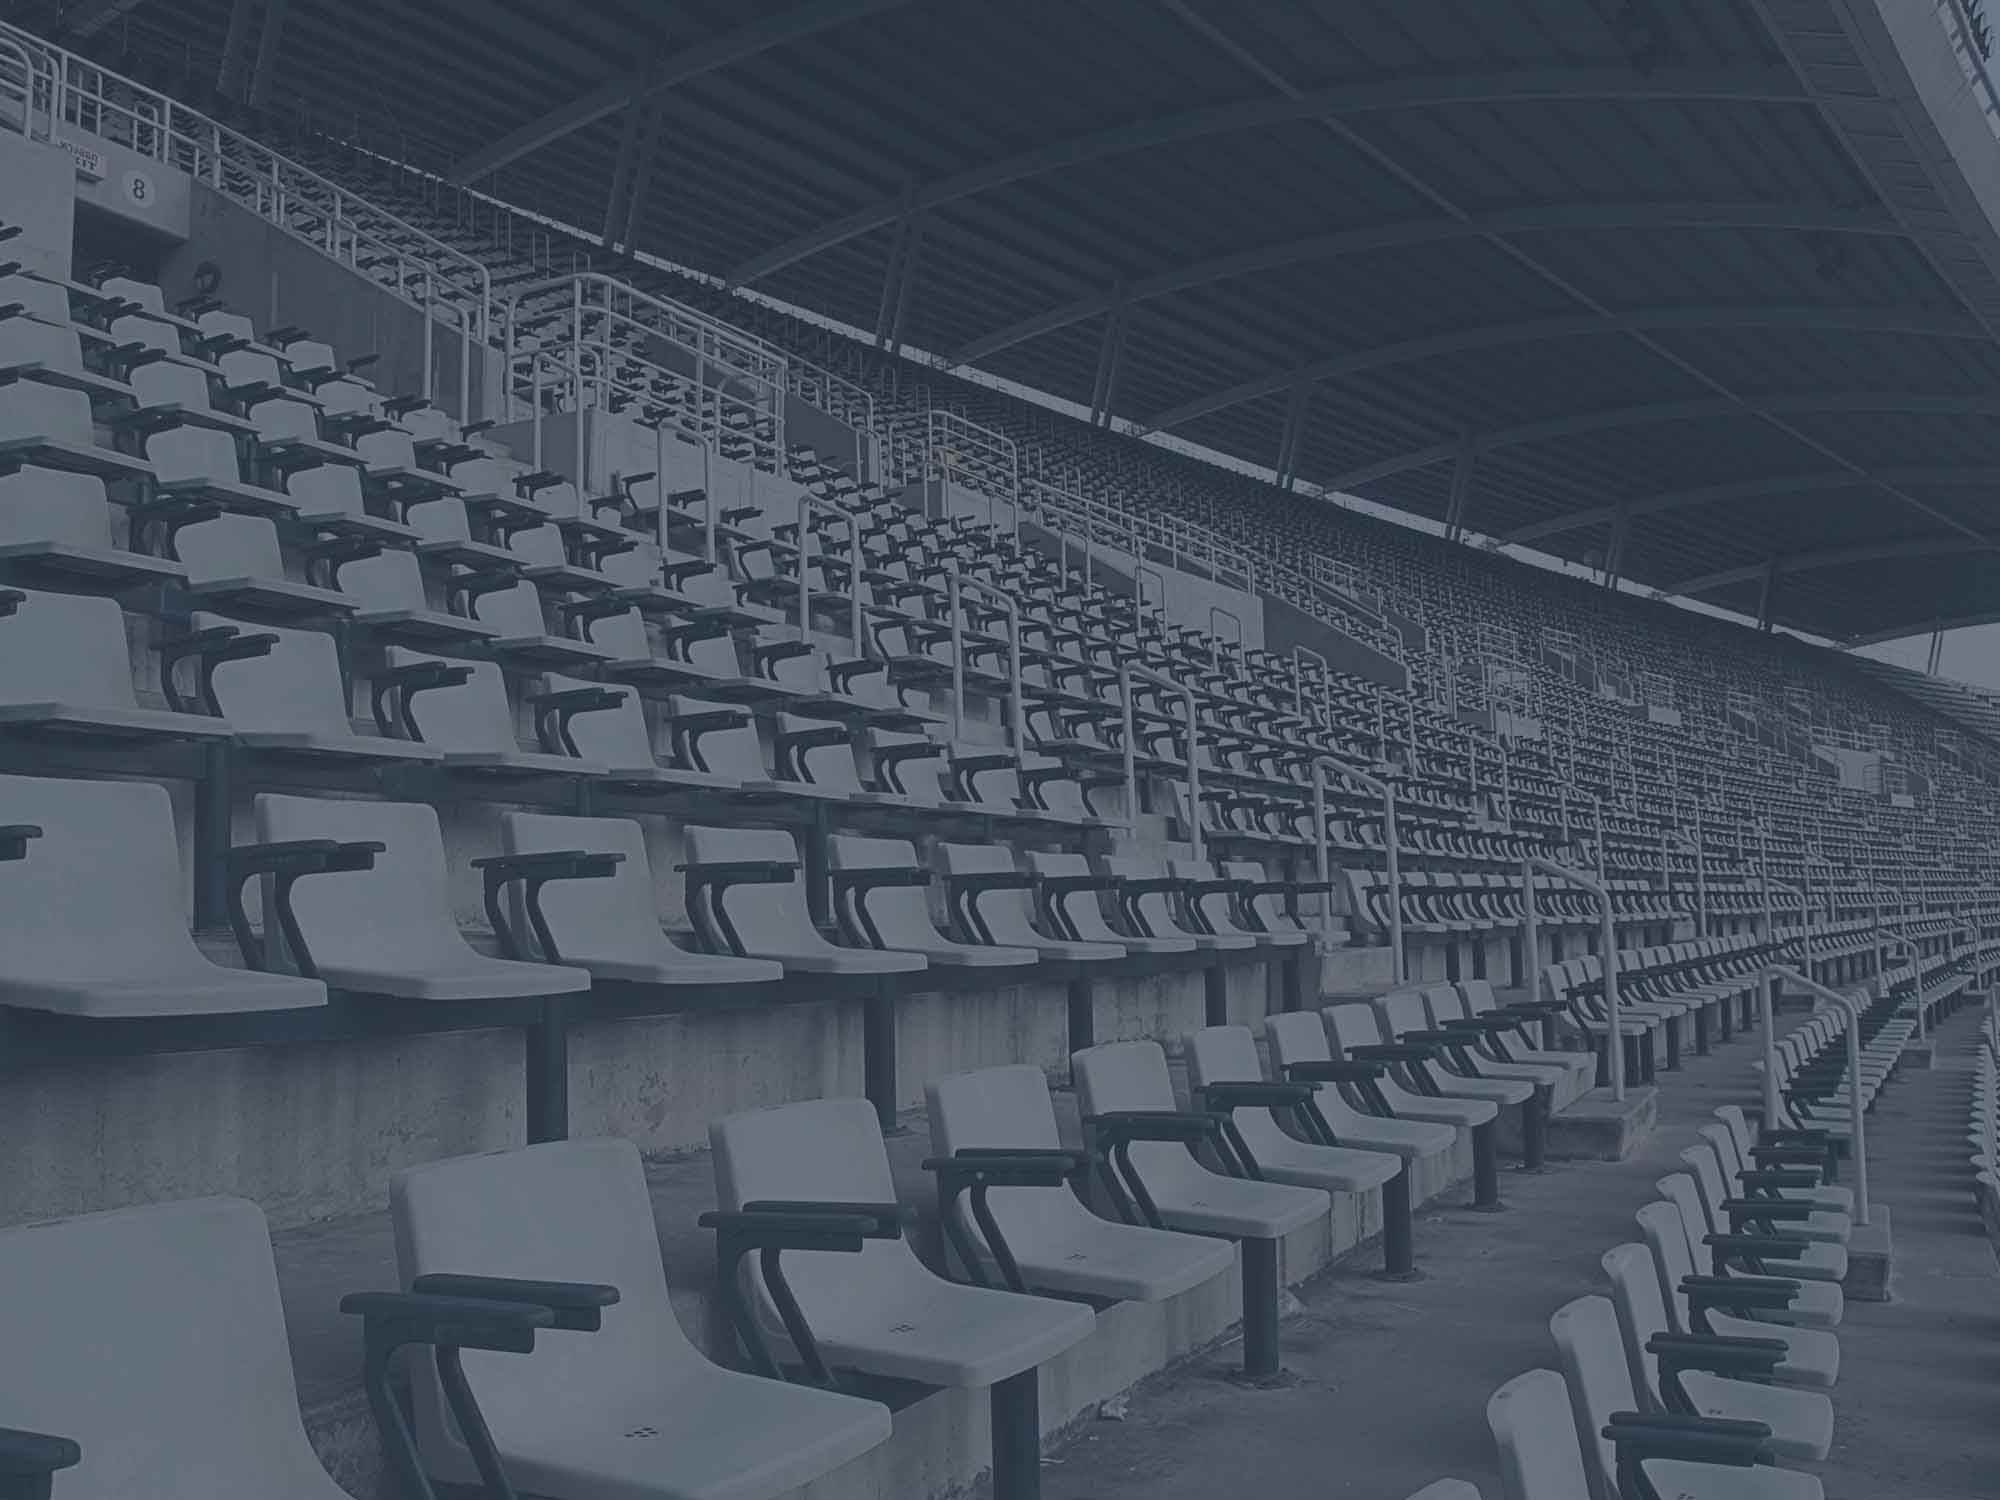 3 Reasons why Indoor Ensembles raise WAY MORE money with FansRaise